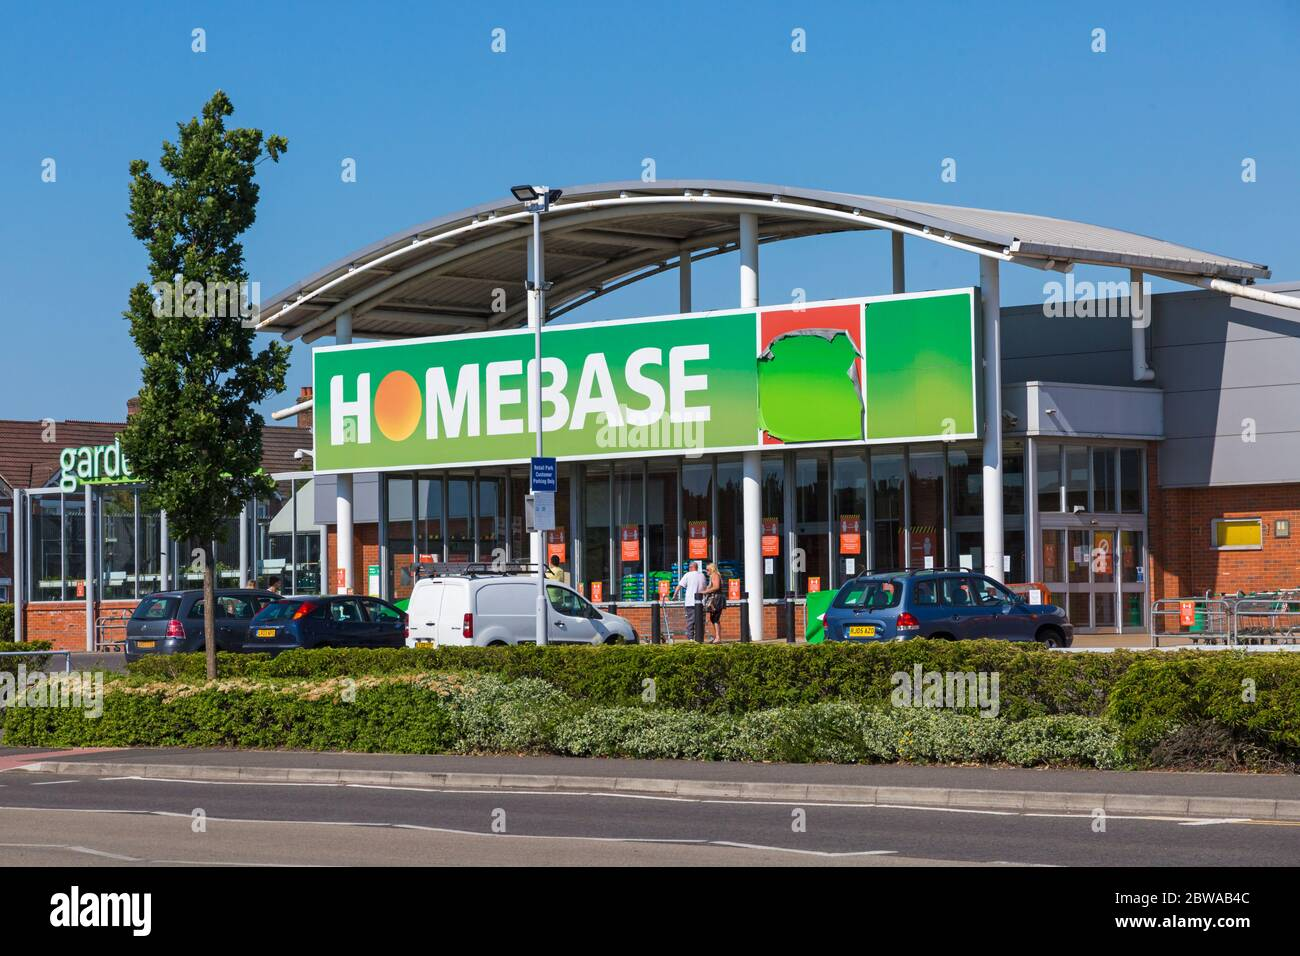 Poole, Dorset UK. 31st May 2020. People queueing at Homebase in Branksome, Poole adhering to social distancing measures during Coronavirus COVID 19 lockdown and easing of restrictions. Credit: Carolyn Jenkins/Alamy Live News Stock Photo